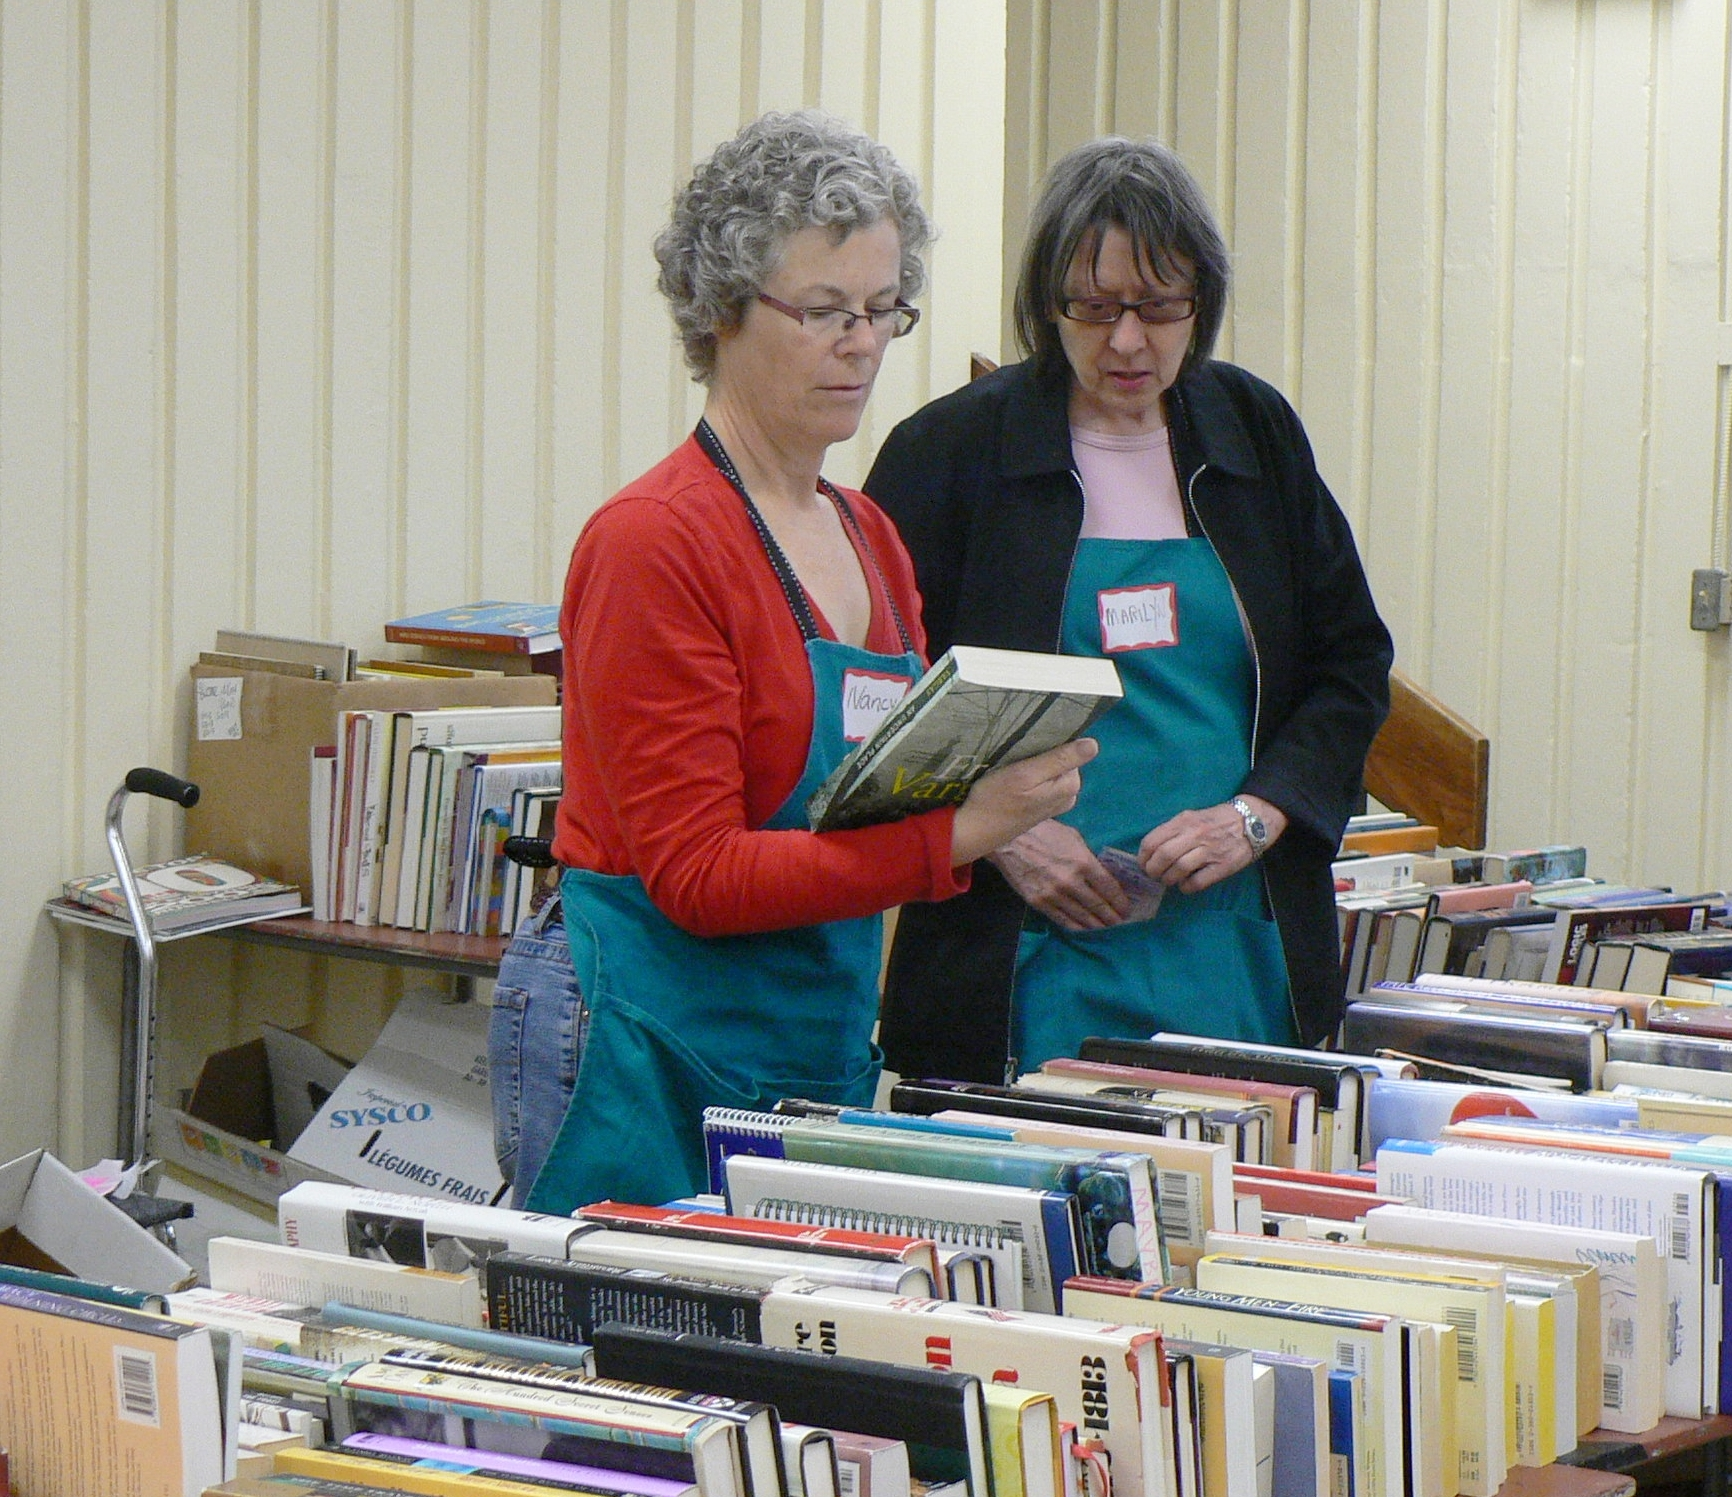 Nancy and Marilyn with books.JPG